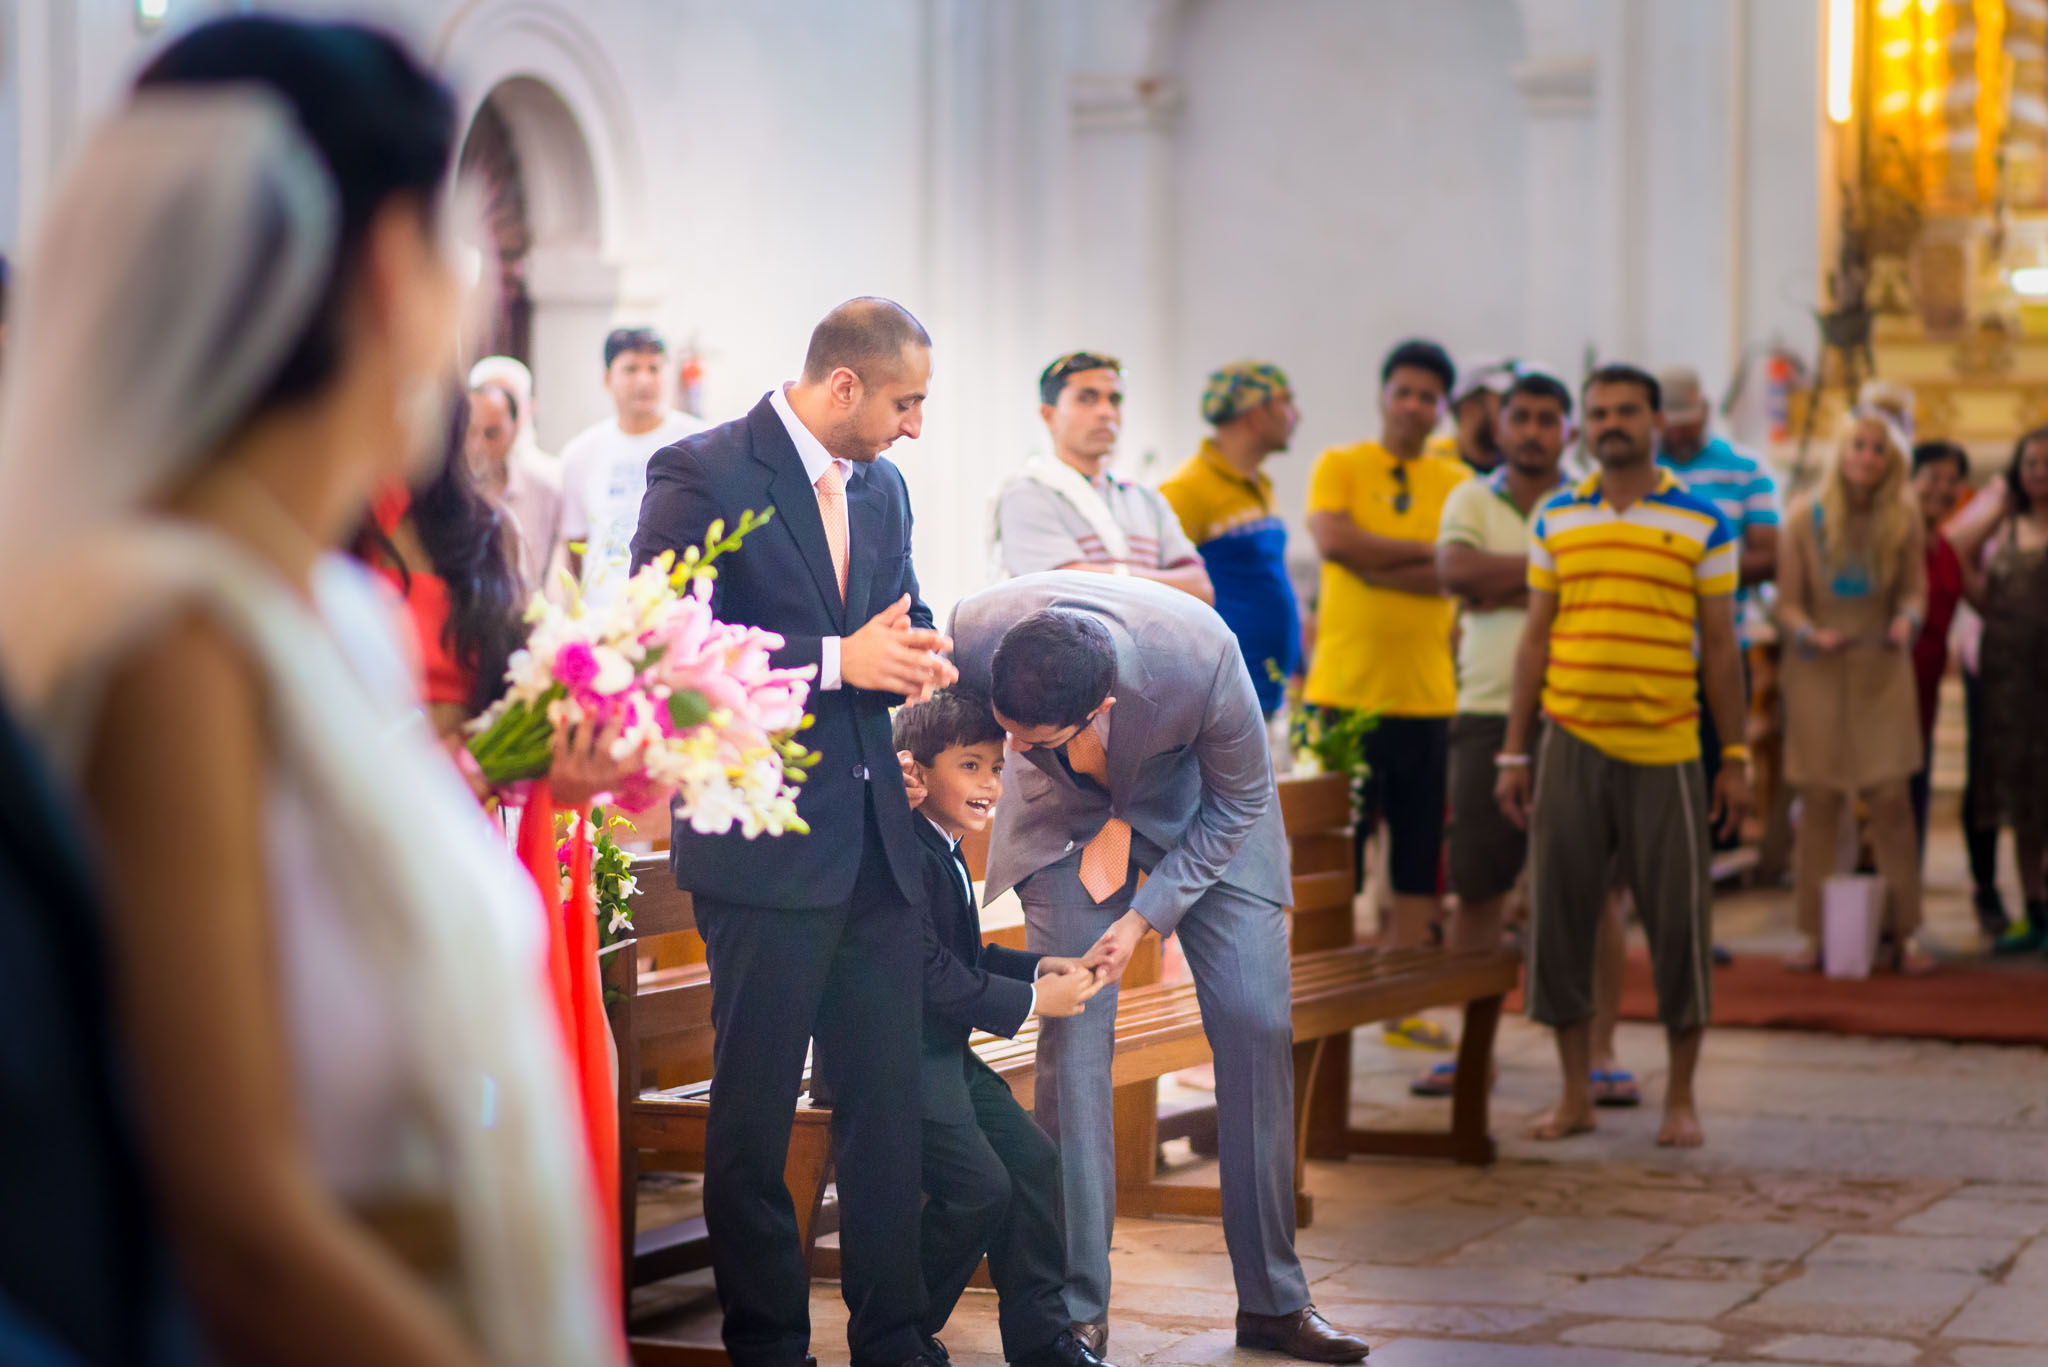 Big-Fat-Indian-Wedding-Destination-Goa-Cidade-de-goa-whatknot-candid-photography-90